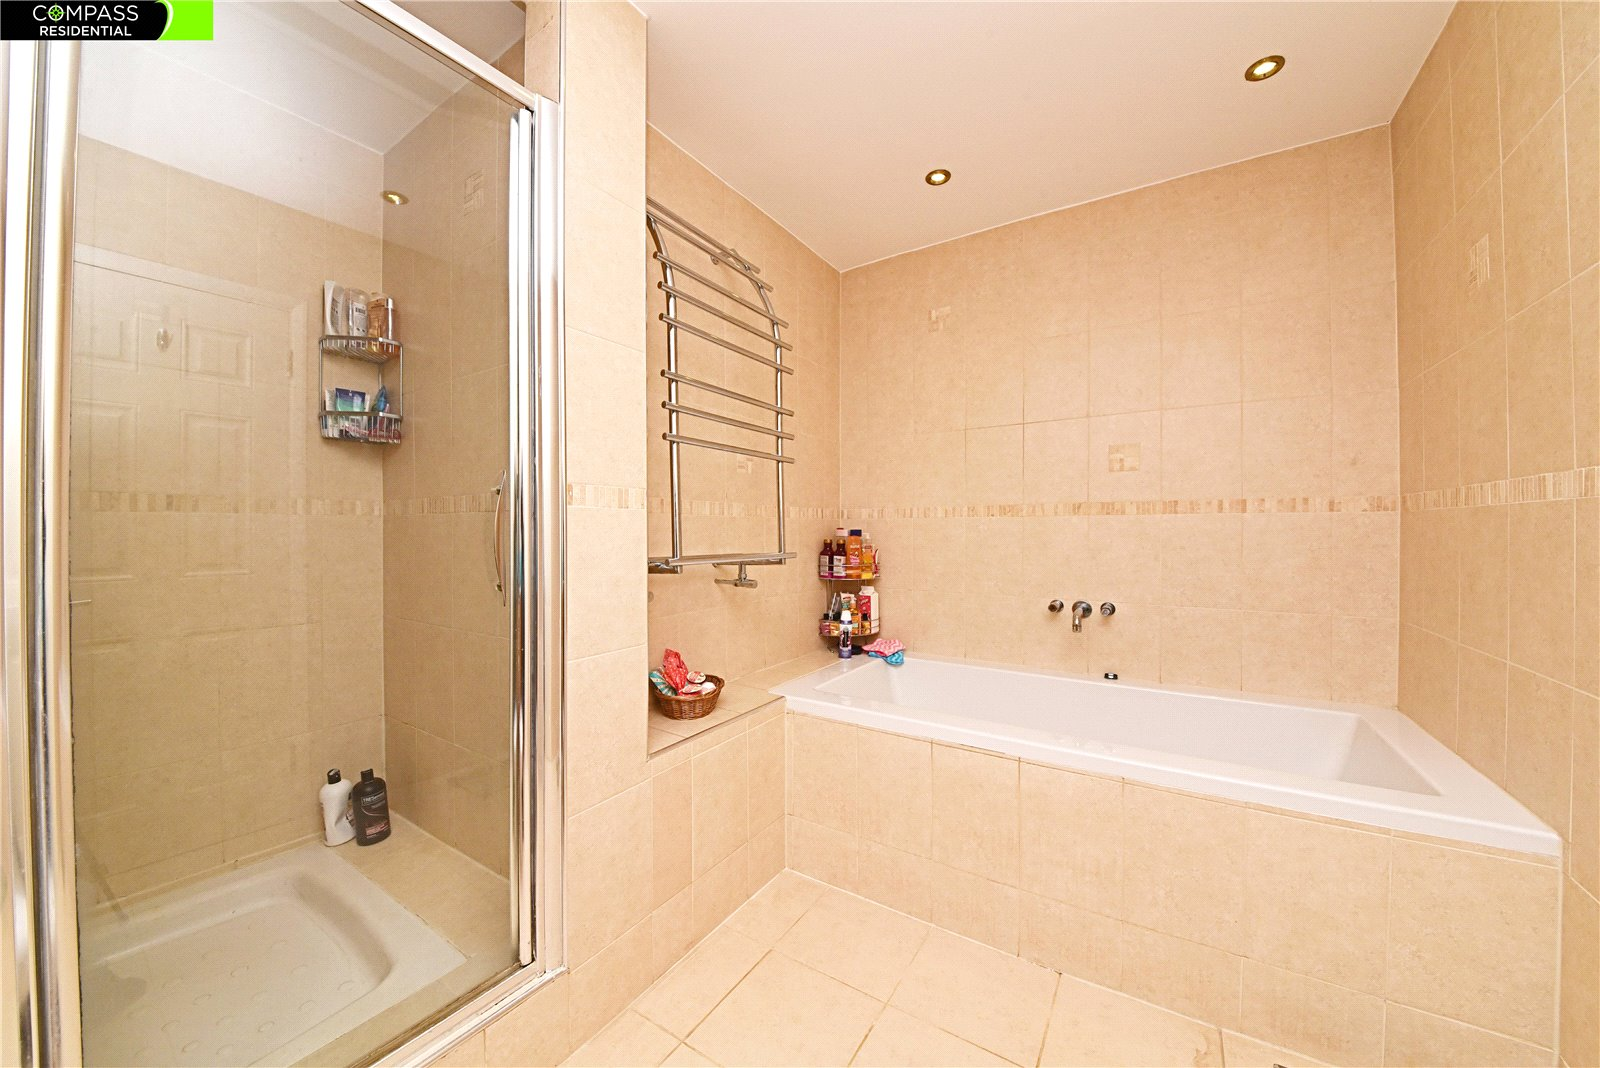 4 bed house for sale in Stanmore, HA7 3AZ  - Property Image 6